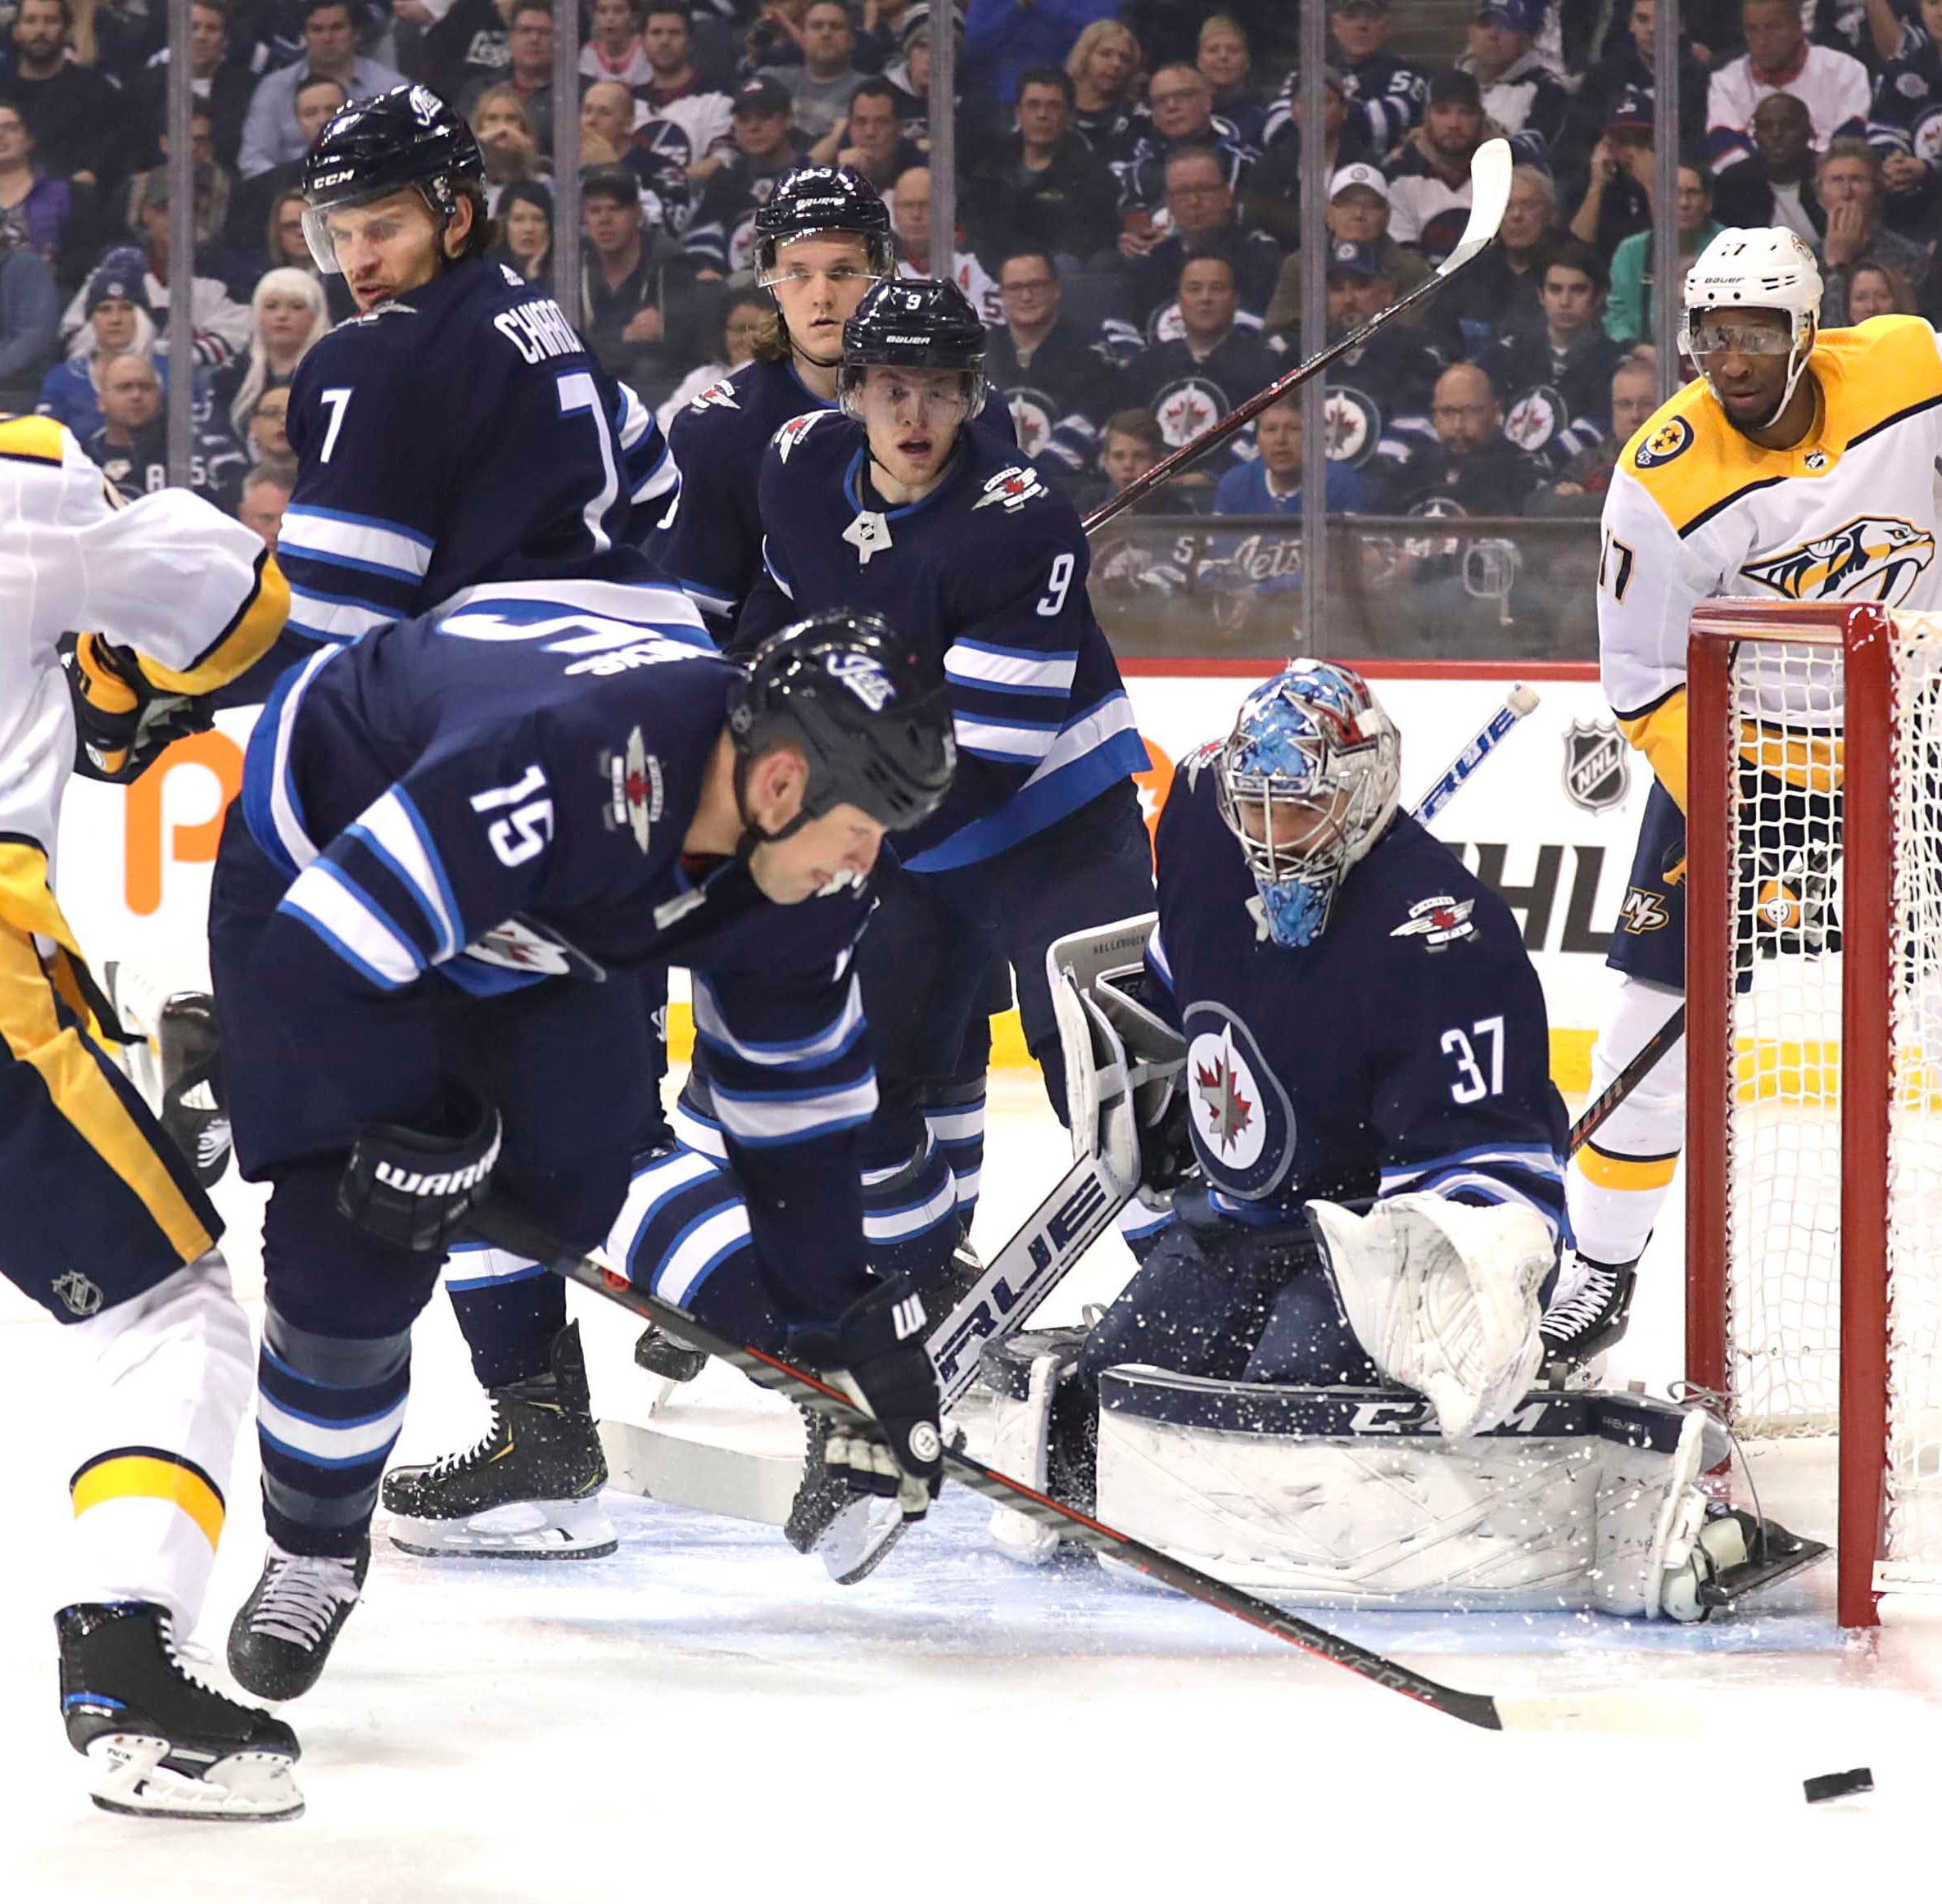 Jets take it to Predators, clinch playoff berth behind hat trick from Kyle Connor